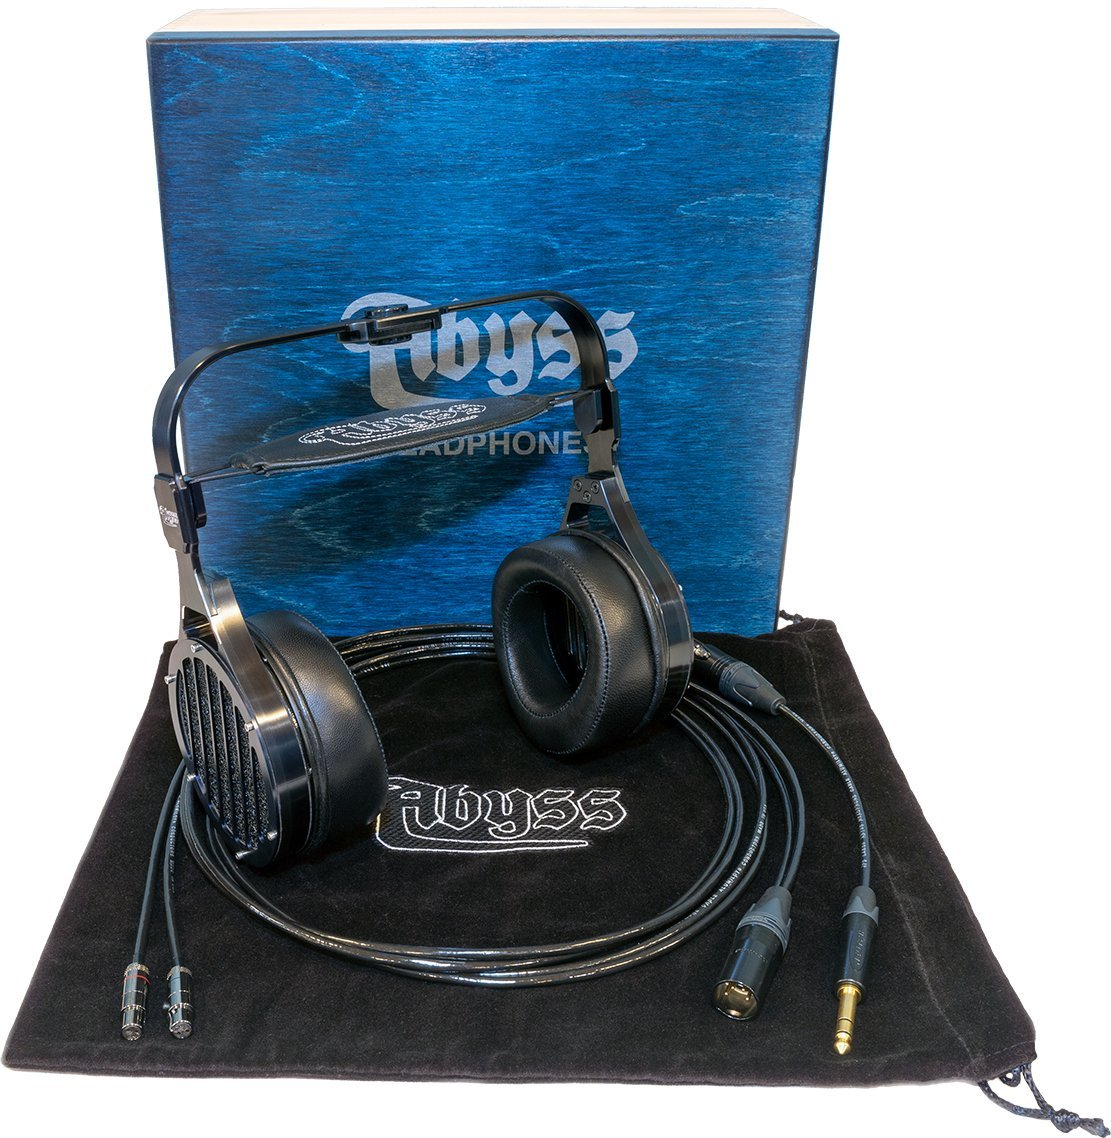 ABYSS AB-1266 Phi TC Lite, XIAUDIO Headphone Amplifier, and JPS Labs Cable Package Deal !!!